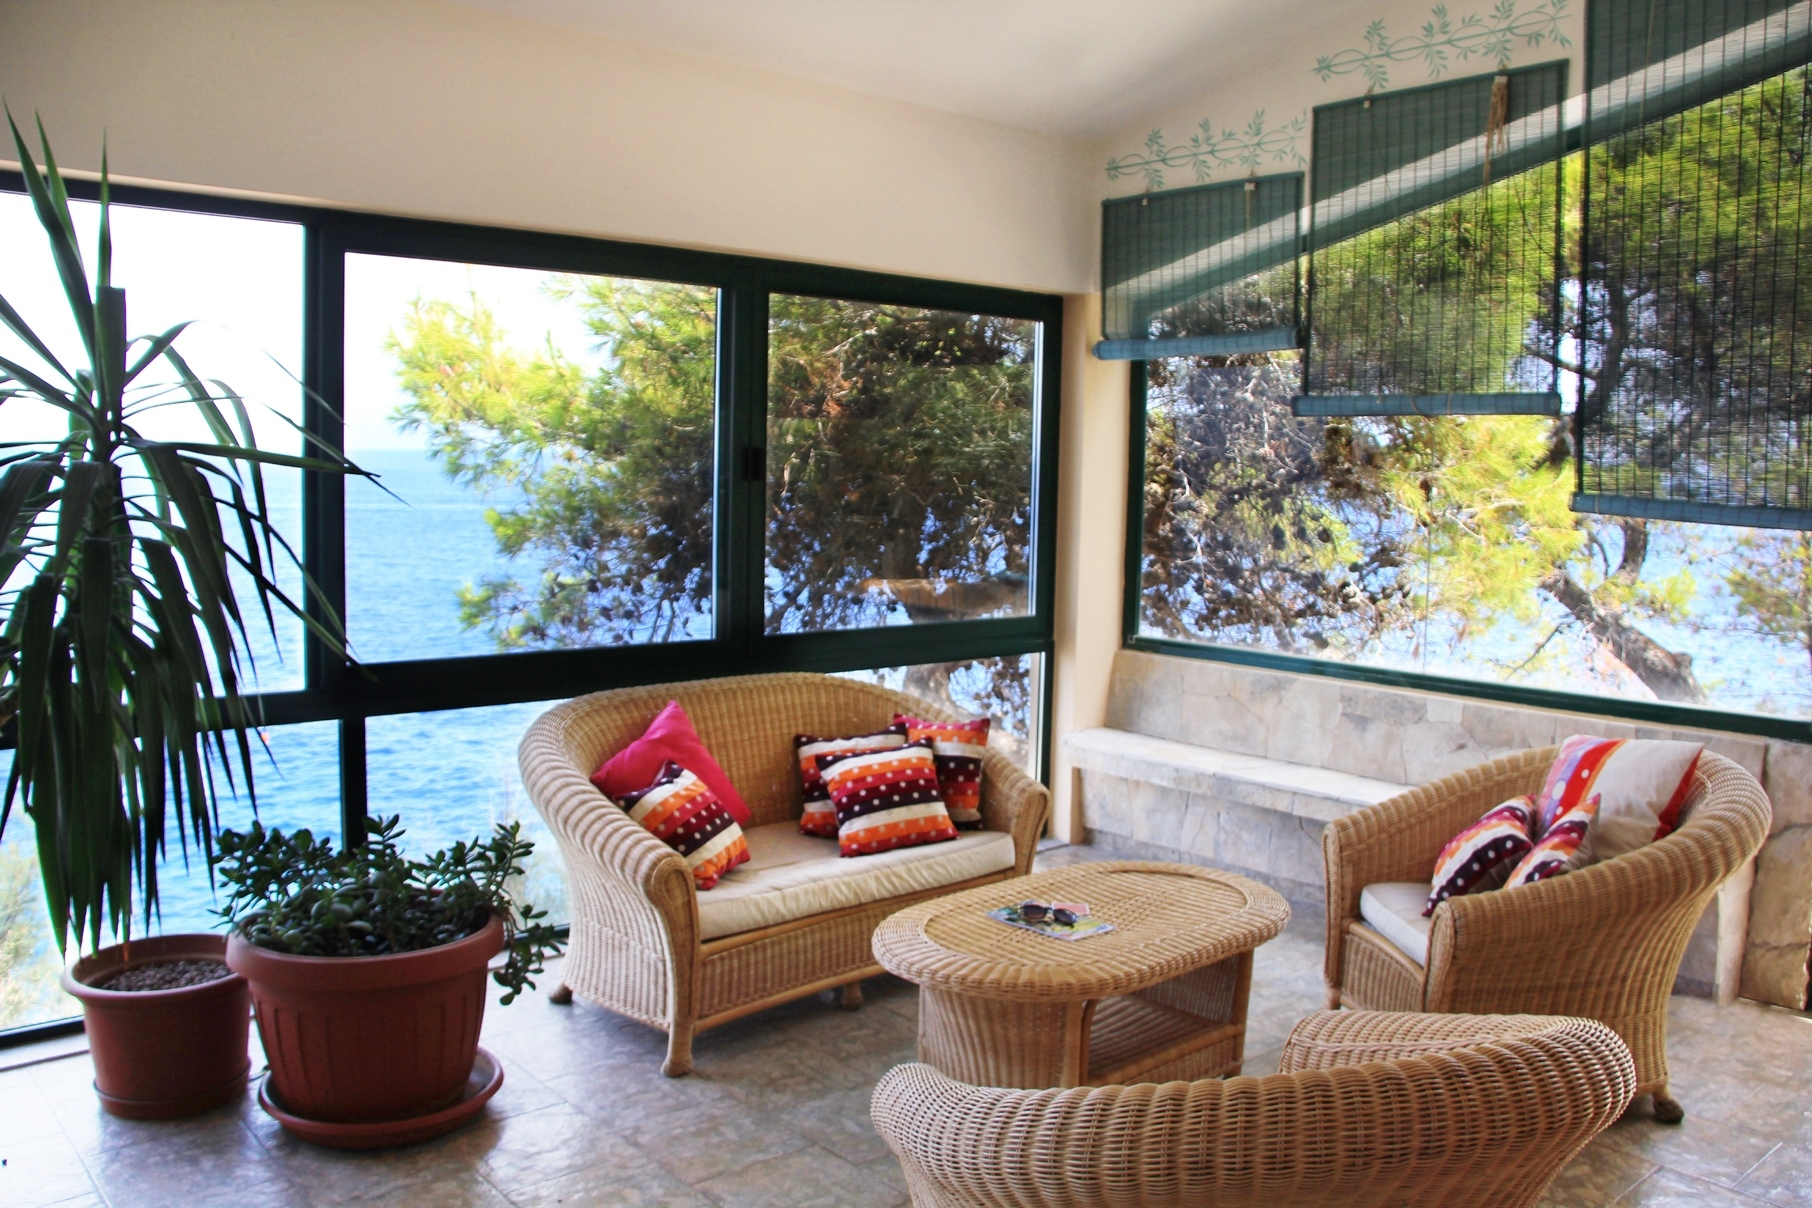 Exclusive villa in the first line bordering directly on the sea